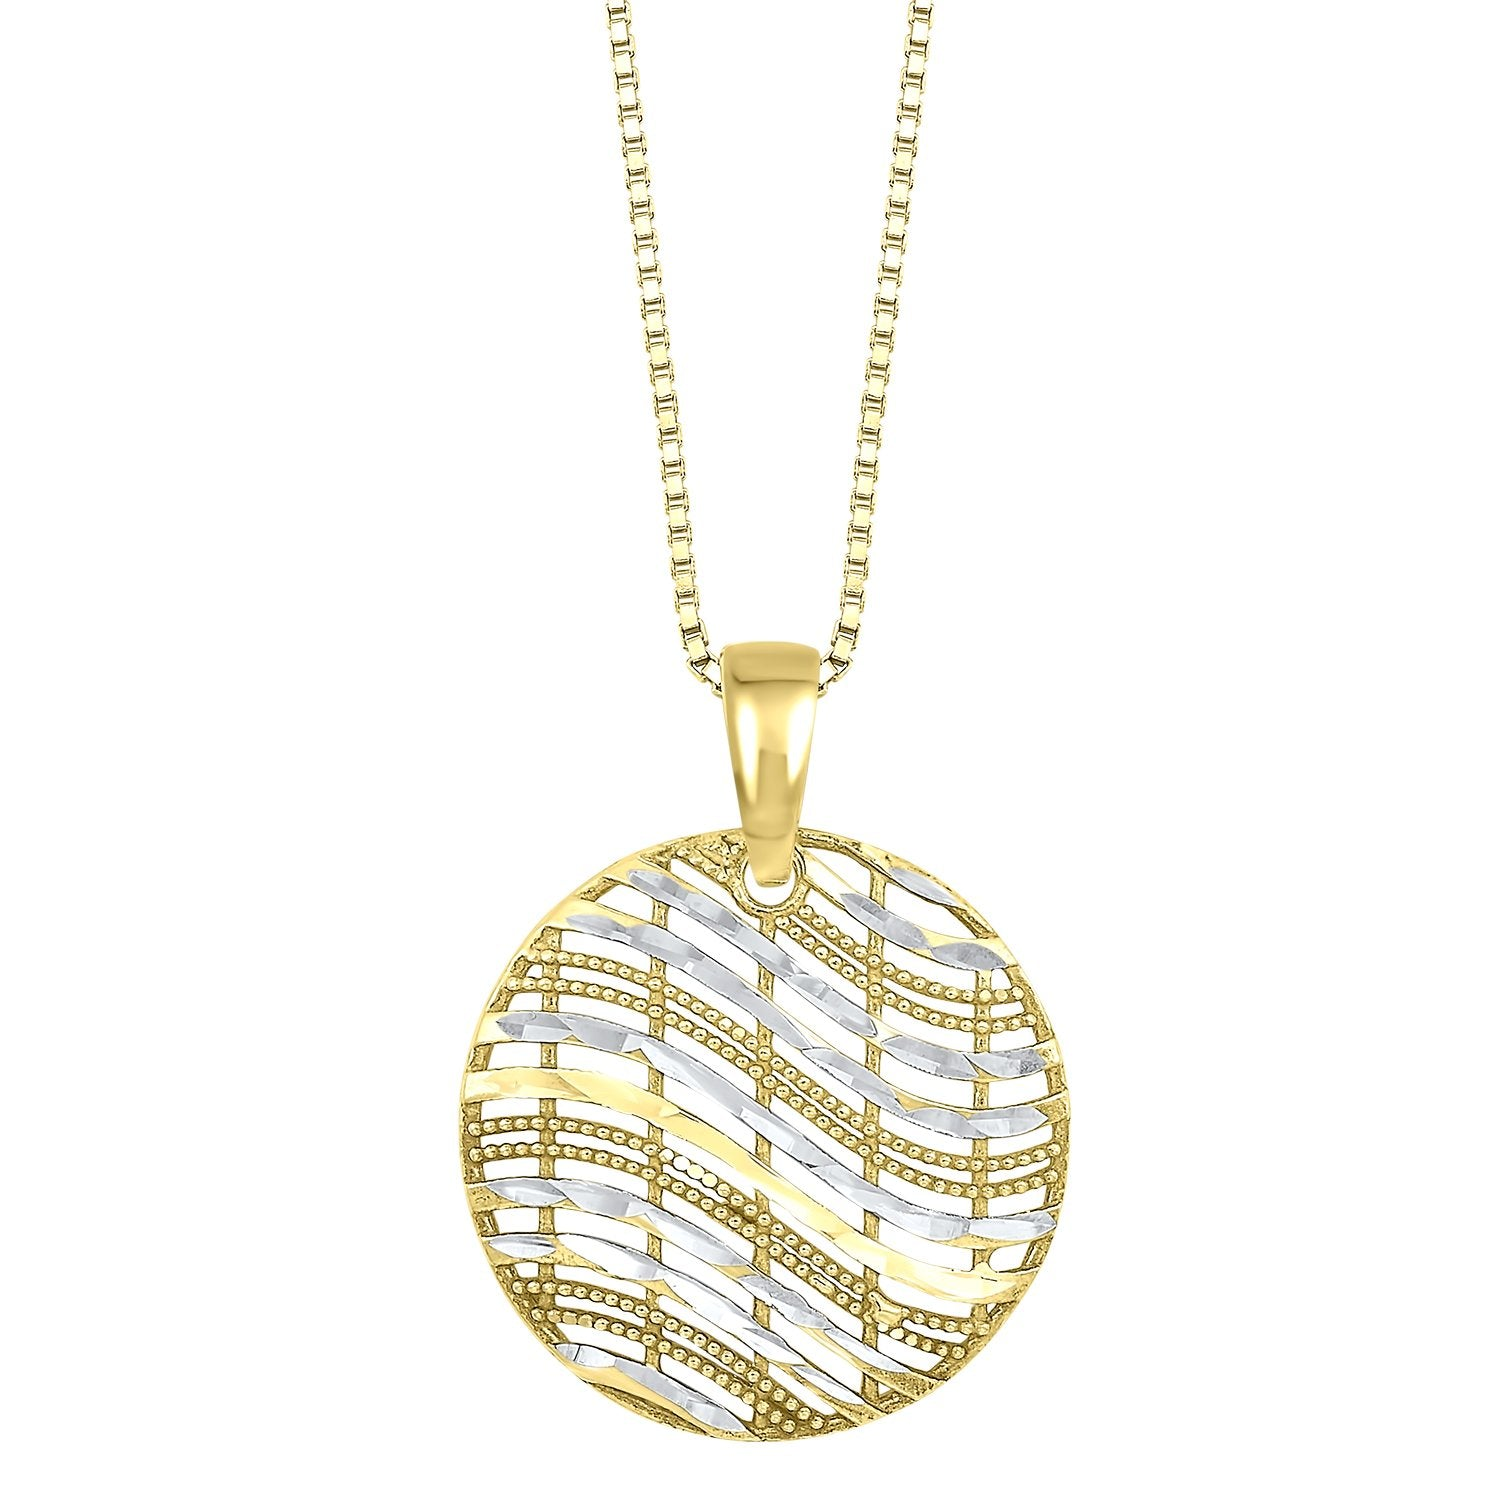 Silver Pendant with 24K Gold overlay